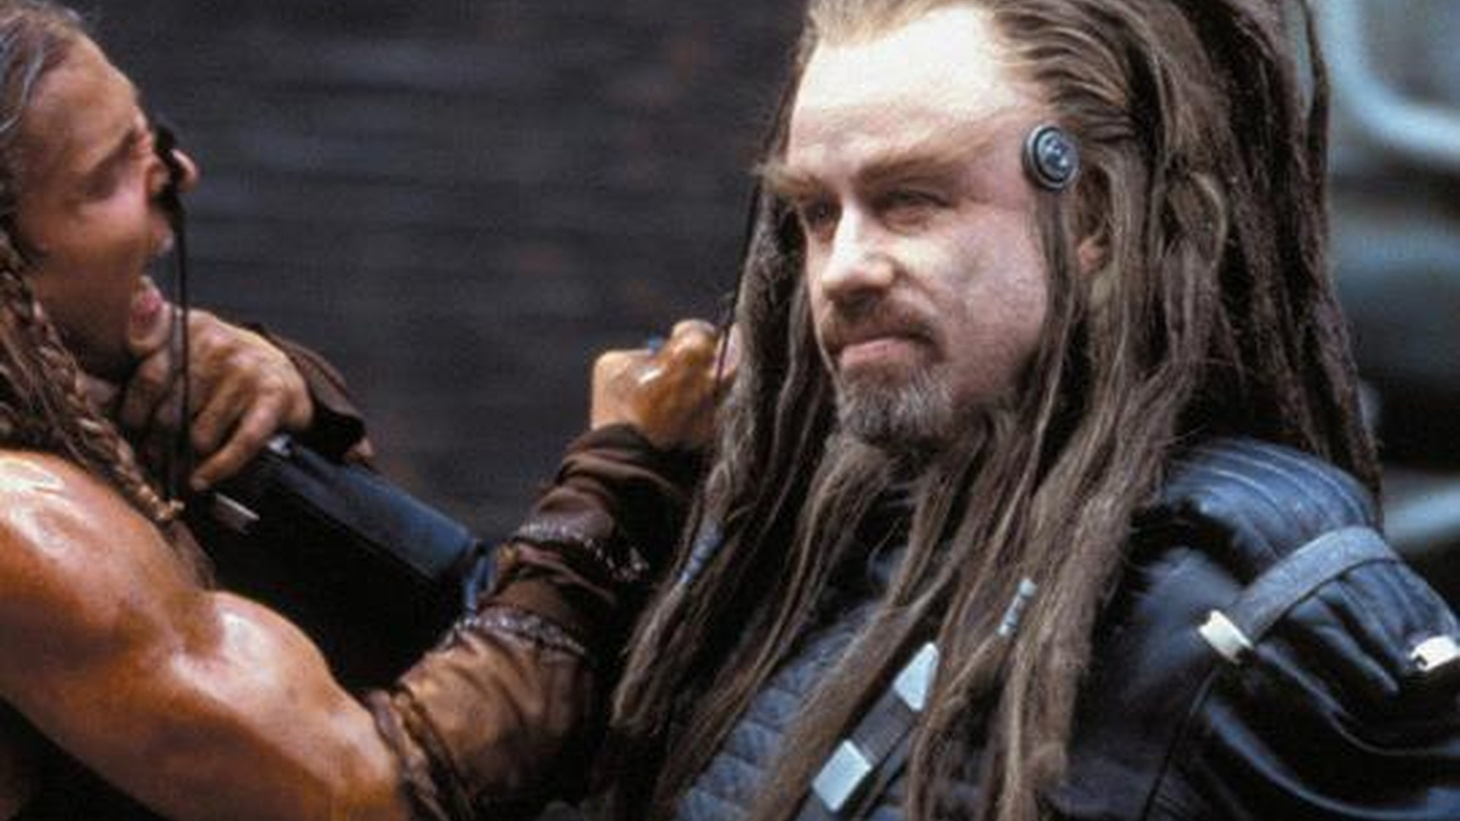 """Battlefield Earth recently won the Razzie for being the """"worst picture of the decade."""" The two credited screenwriters on that film -- J.D. Shapiro and Corey Mandell — say, """"Don't blame us!"""" We find out how their careers survived writing one of the most notorious movies ever. (This program was originally broadcast on April 19, 2010. Today's show features an all new Hollywood banter.)"""